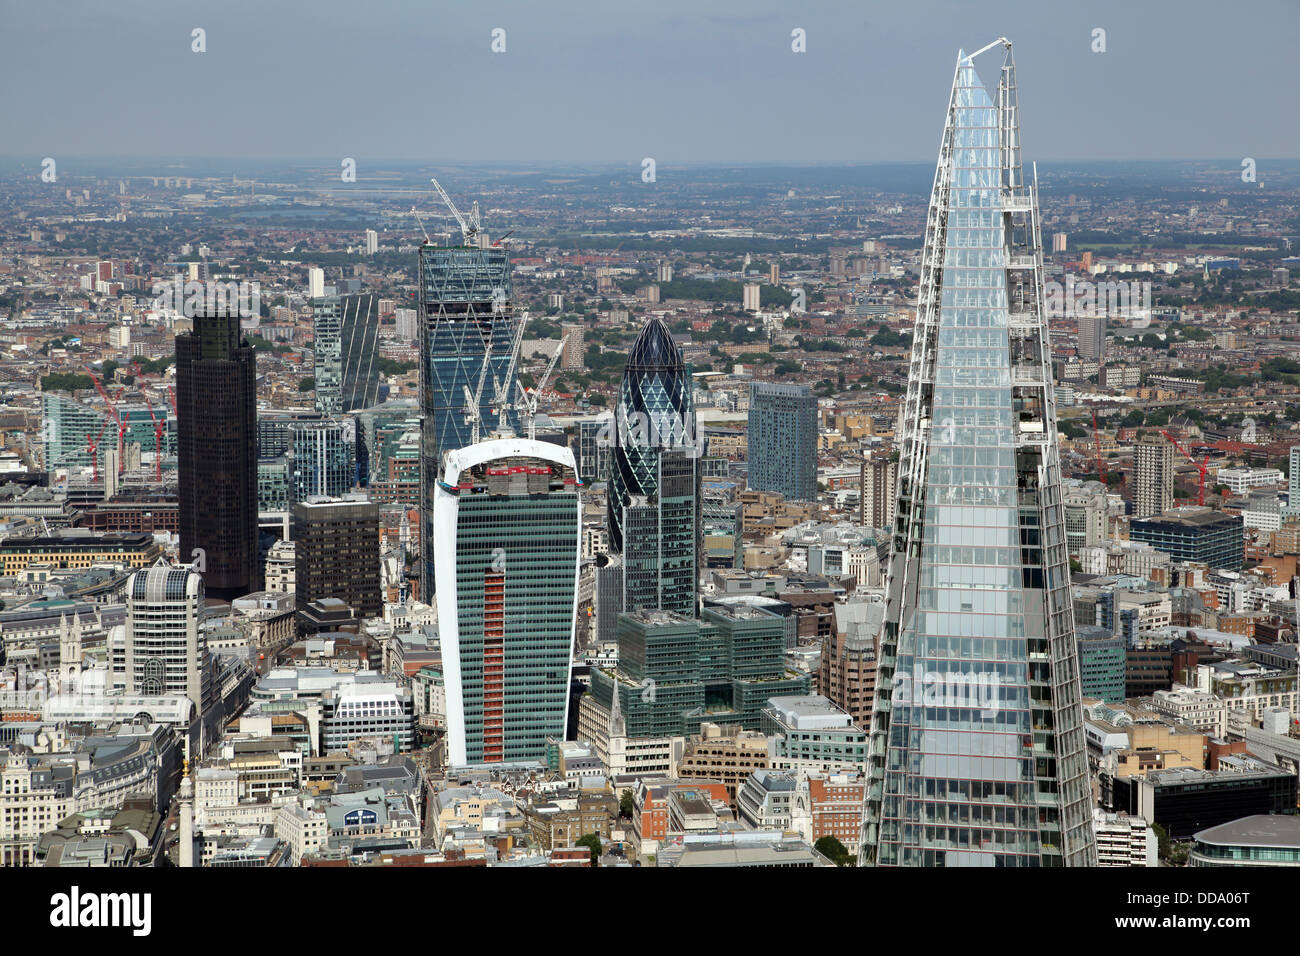 an aerial view of the City of London including The Shard and The Walkie-Talkie and Gherkin buildings - Stock Image